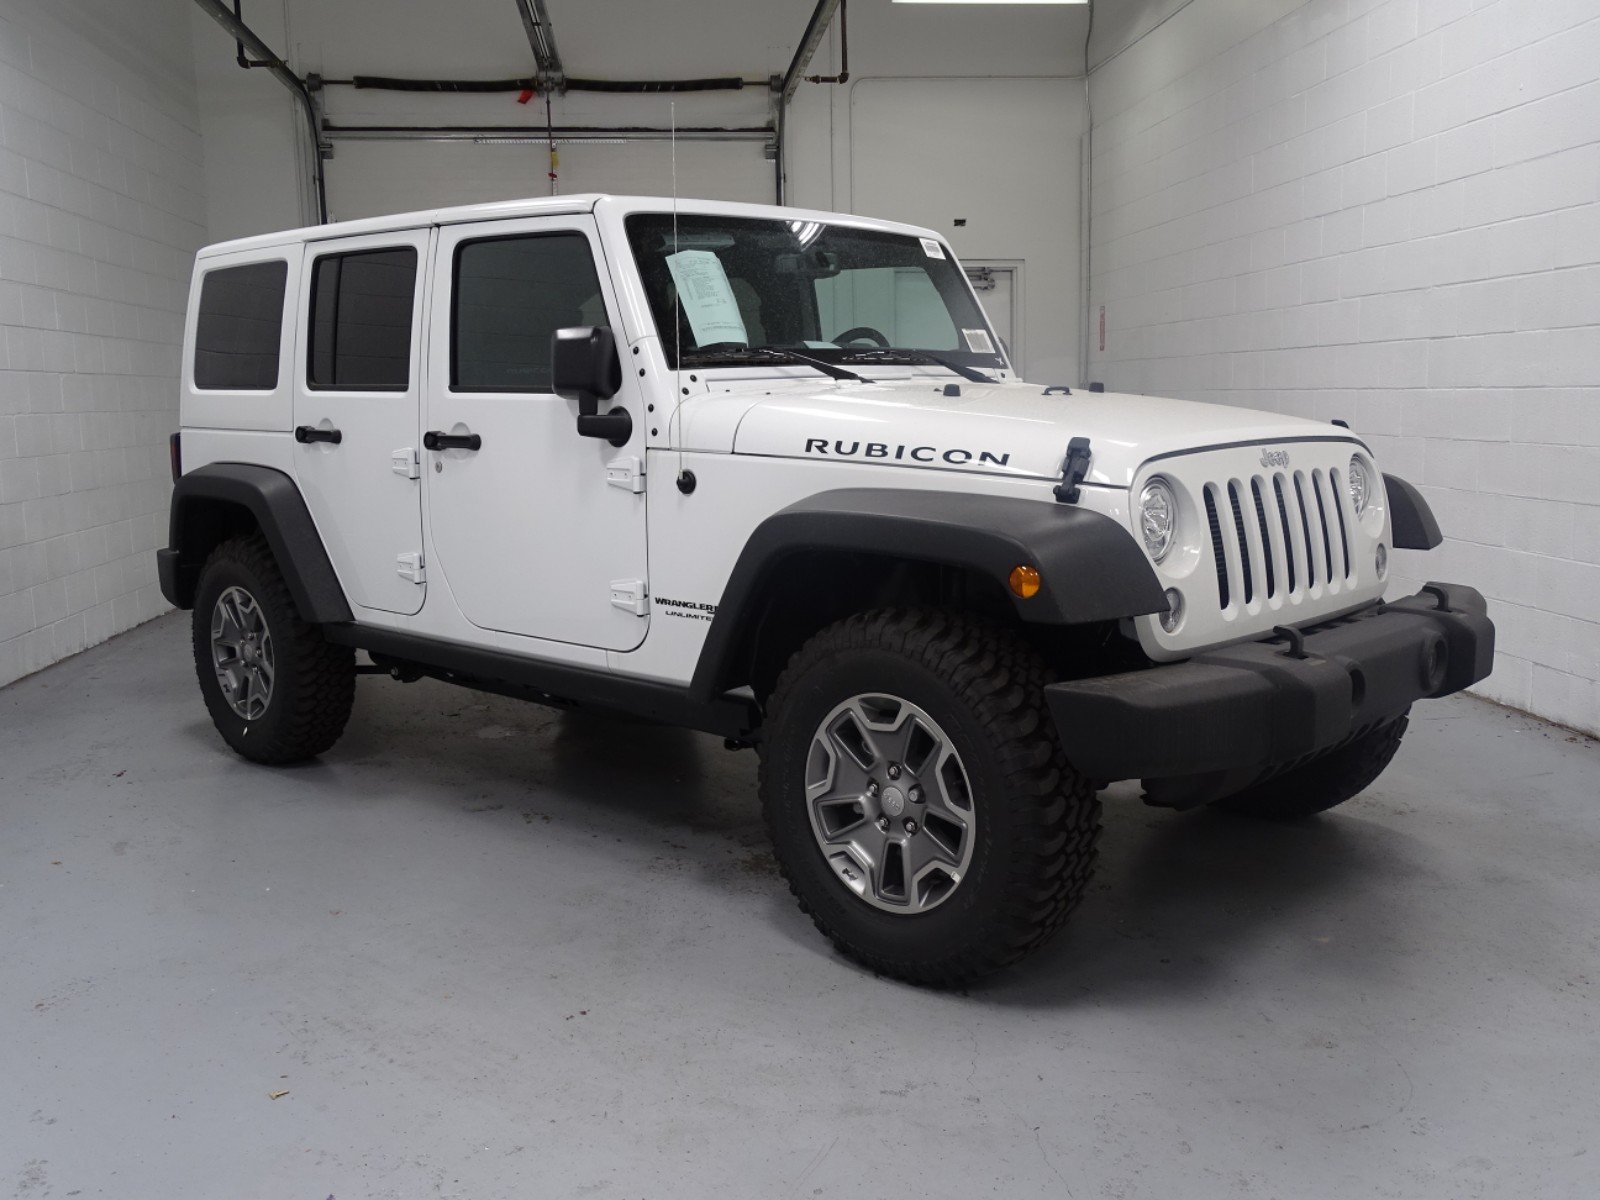 sport unlimited wrangler recon inventory utility rubicon in jeep new